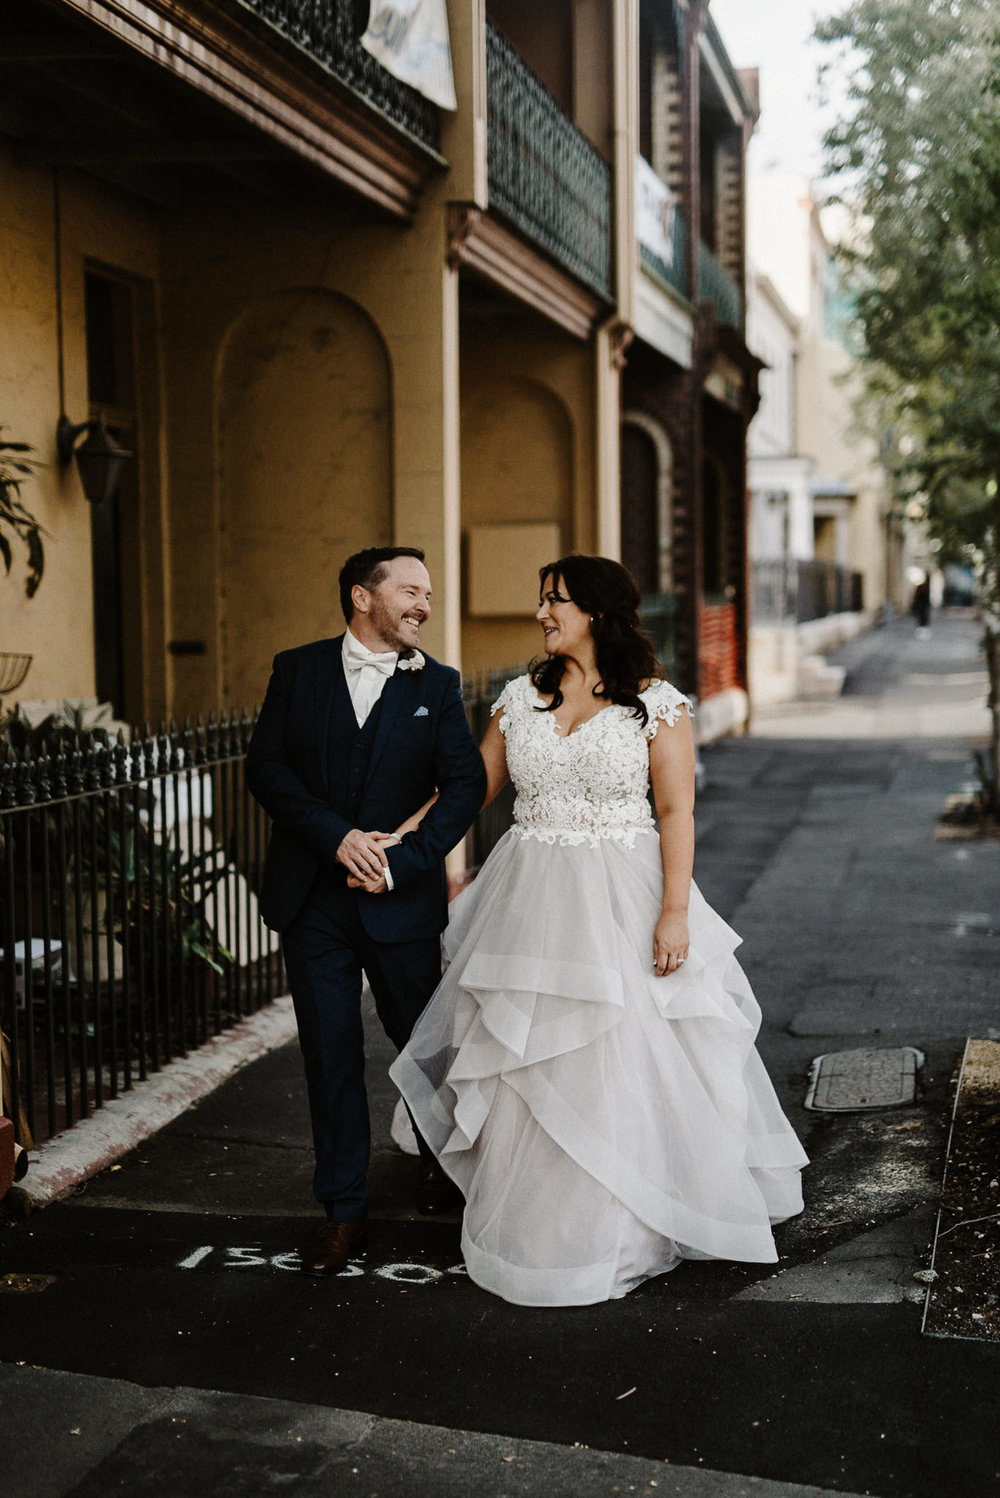 Sydney Wedding Photographer (77 of 103).jpg